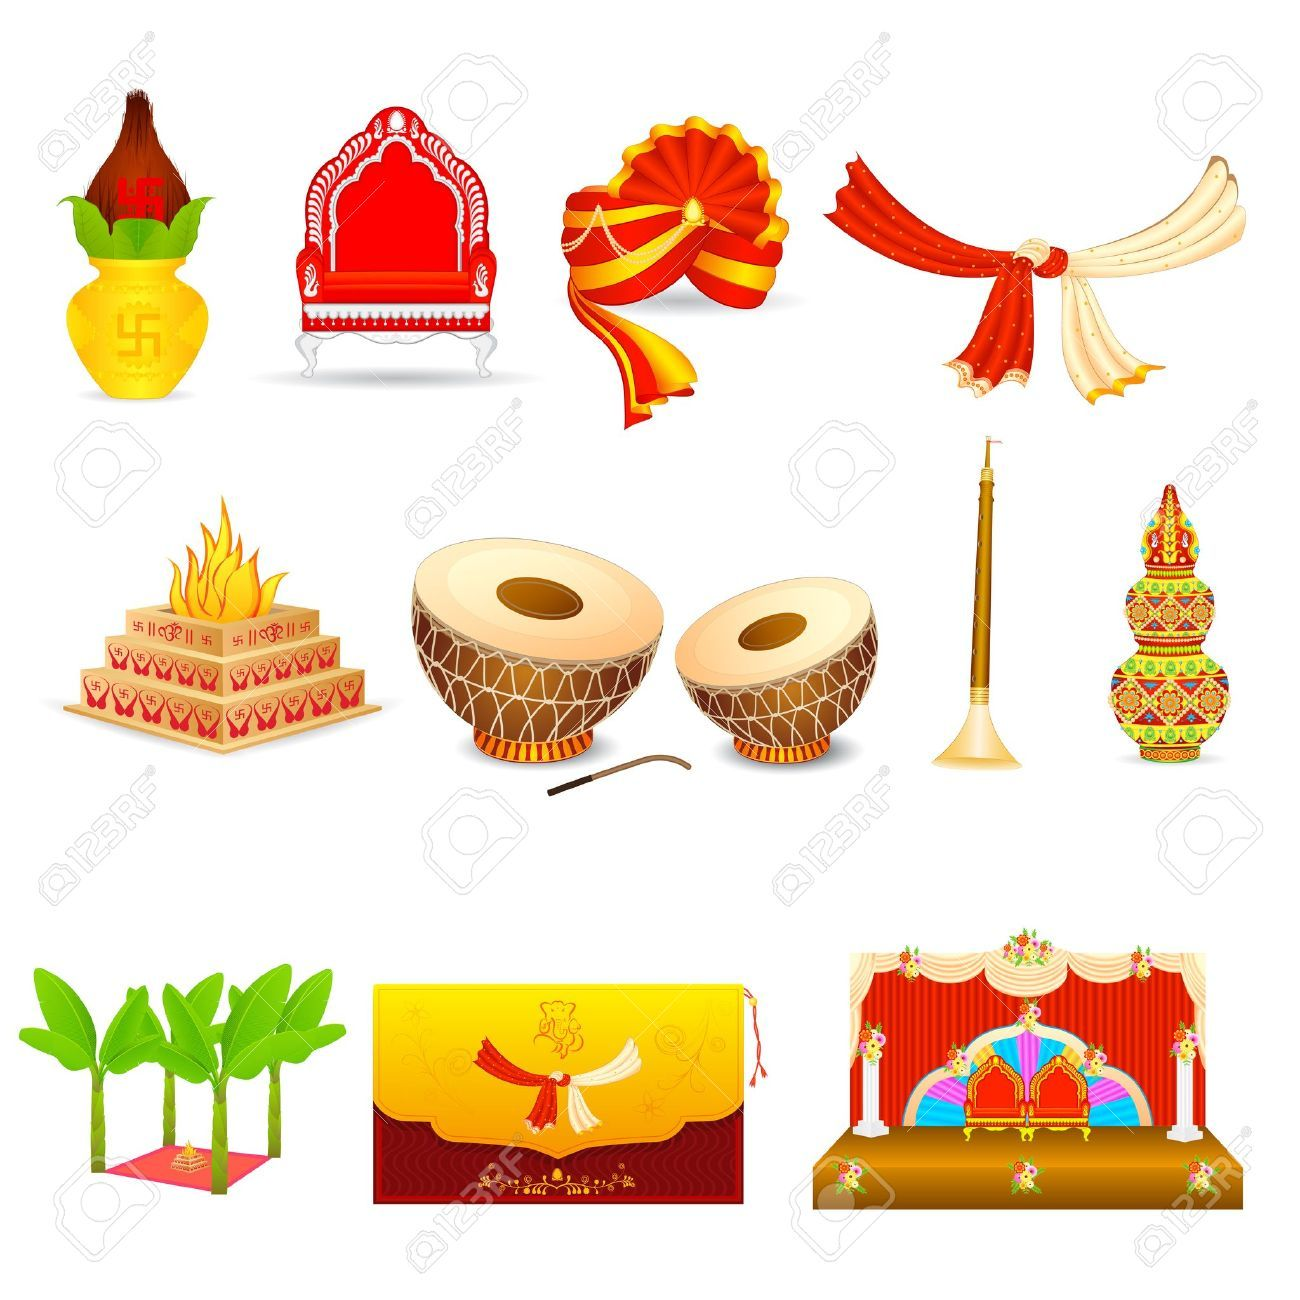 indian wedding cliparts clipart collection